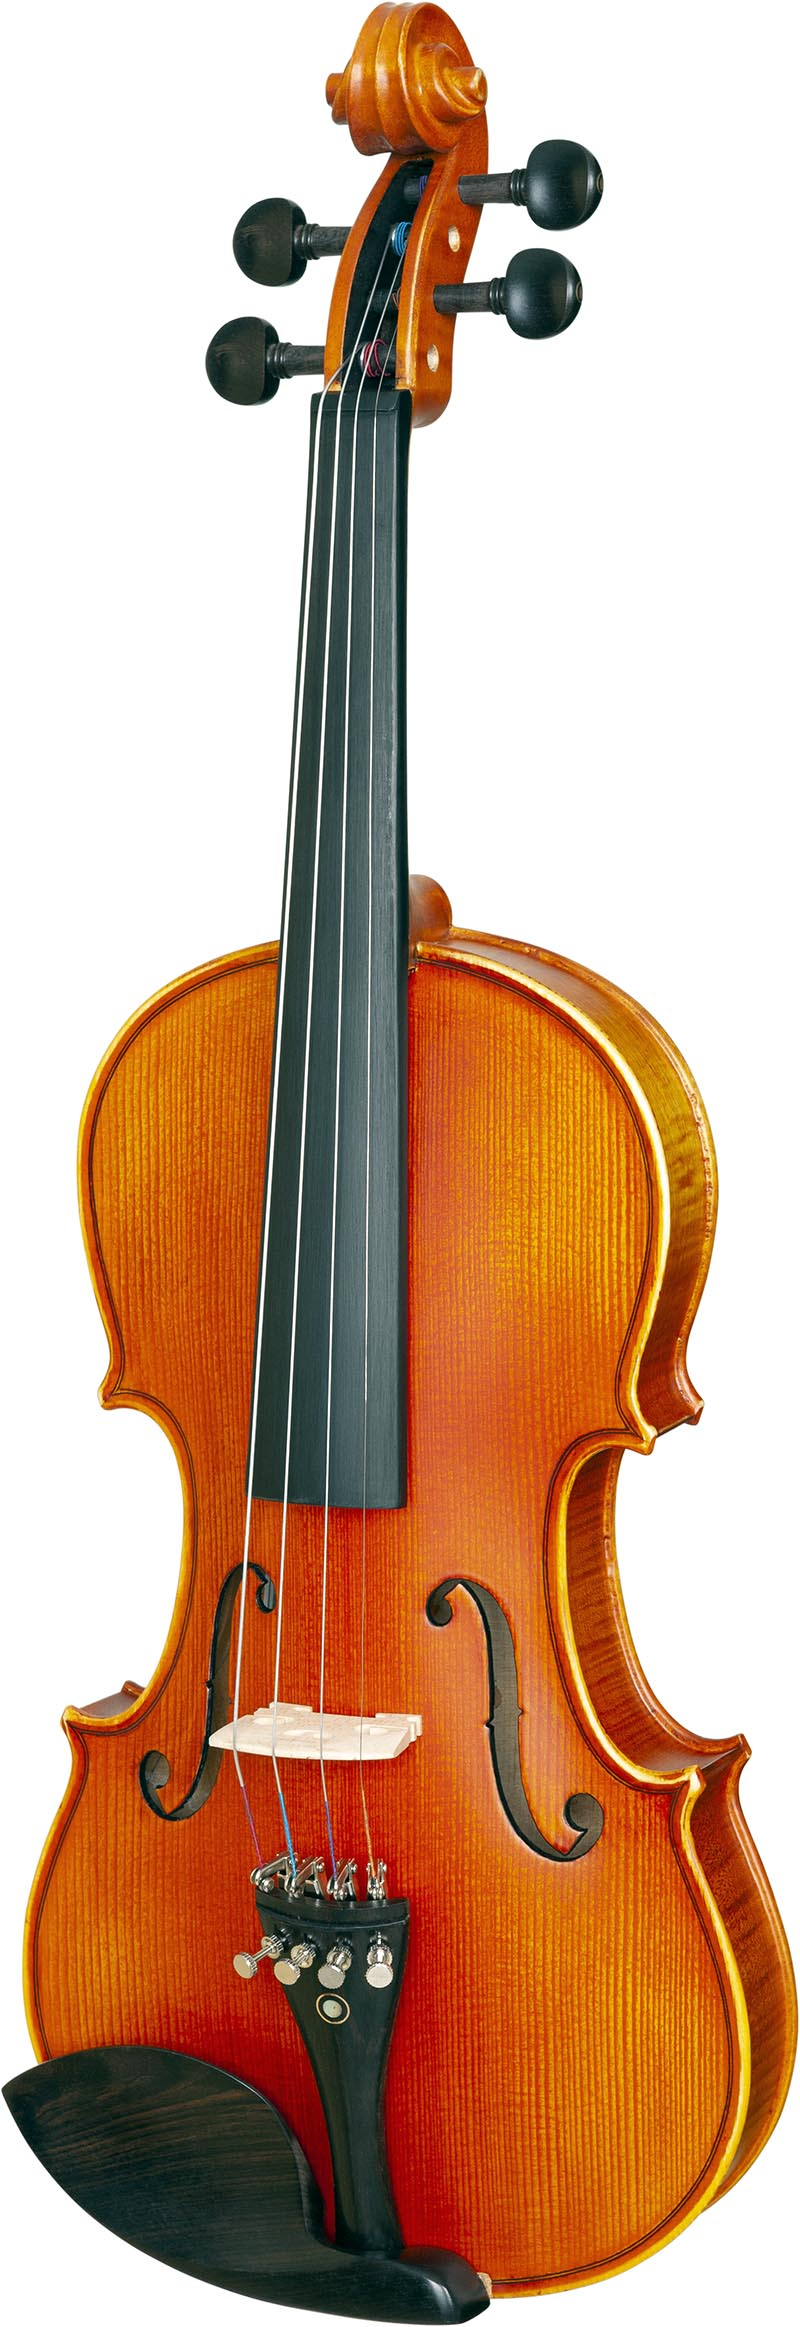 ve245 violino eagle ve245 visao frontal vertical